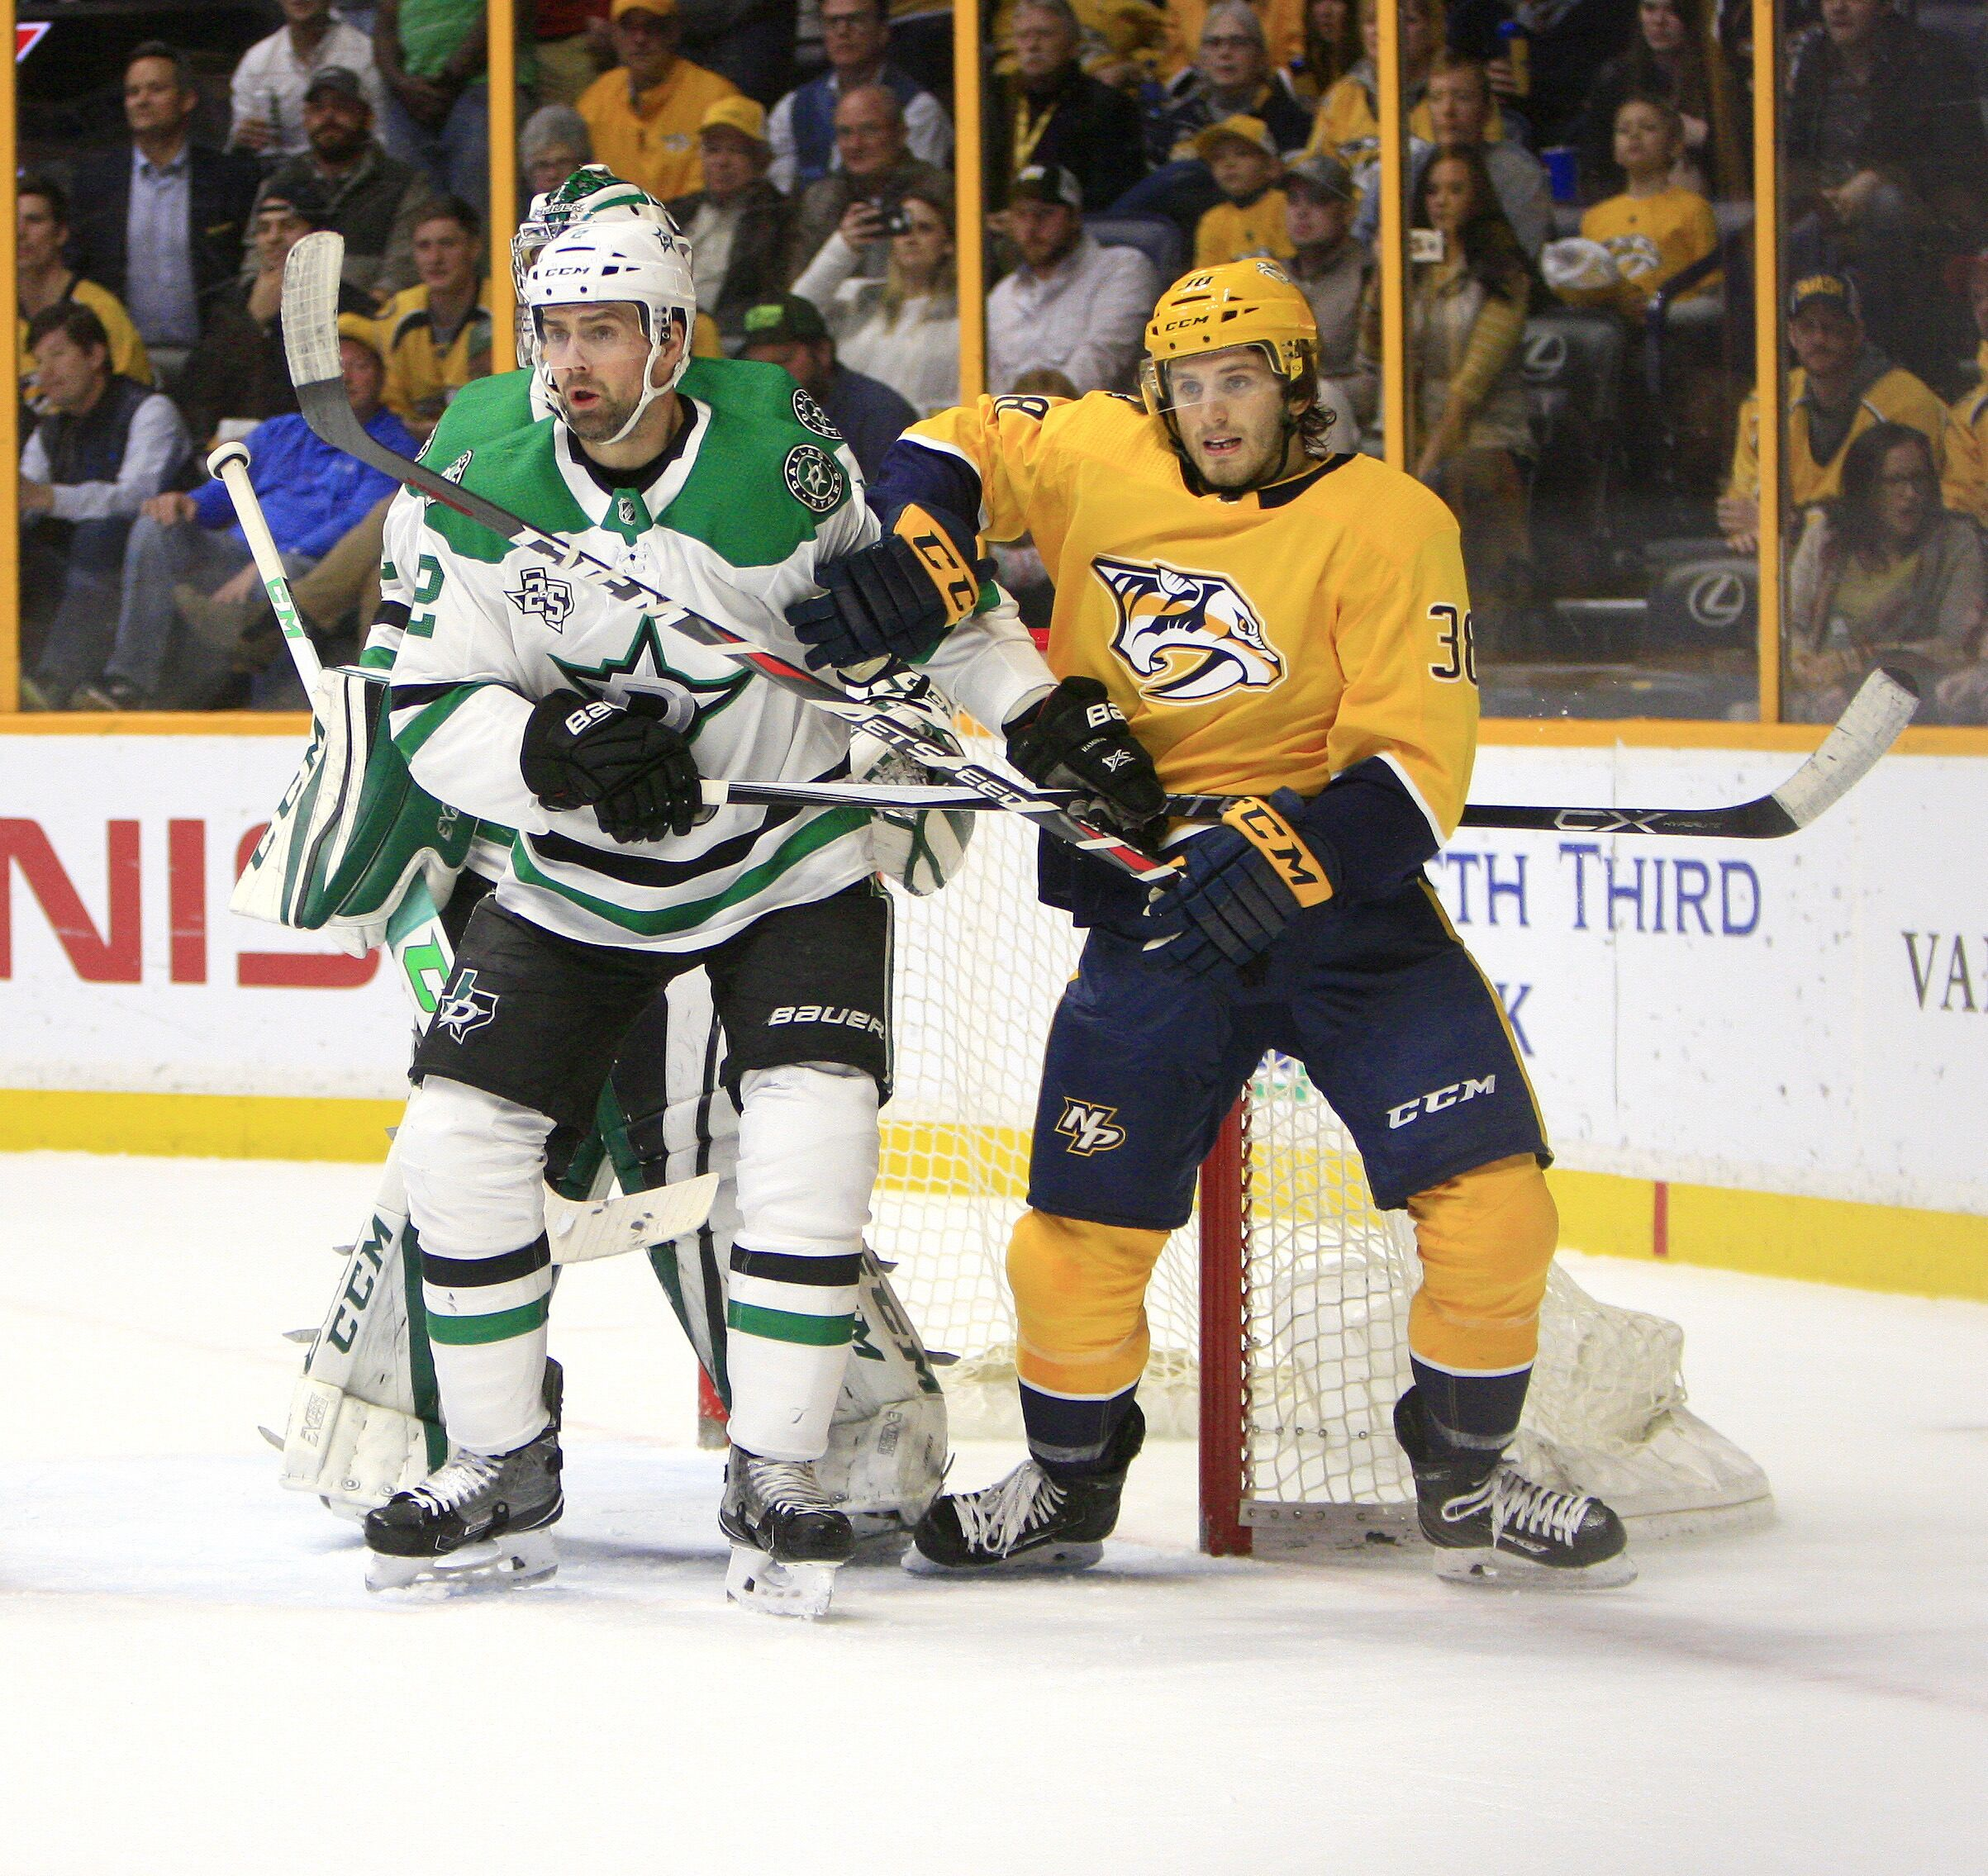 929028966-nhl-mar-06-stars-at-predators.jpg